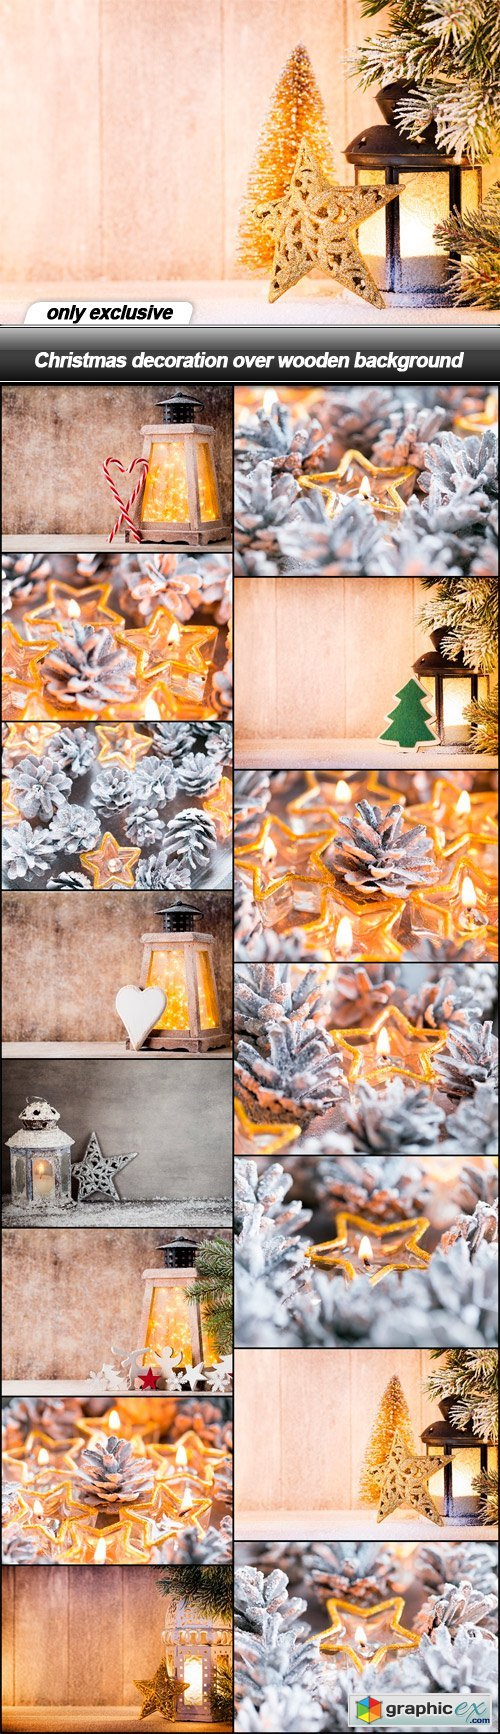 Christmas decoration over wooden background - 15 UHQ JPEG